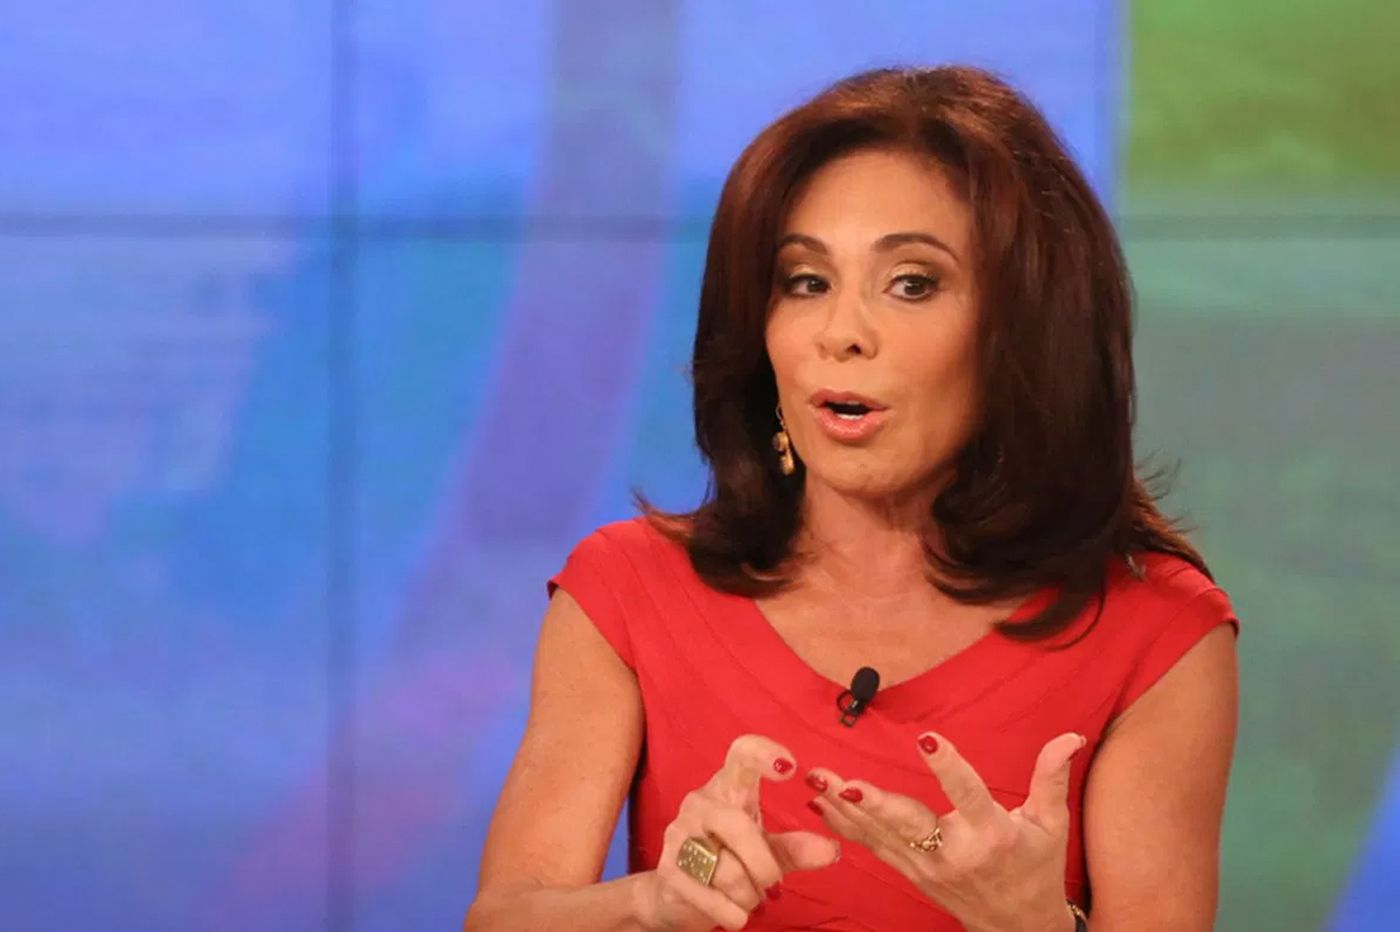 Trump calls on Fox News to bring back Jeanine Pirro following anti-Muslim comments